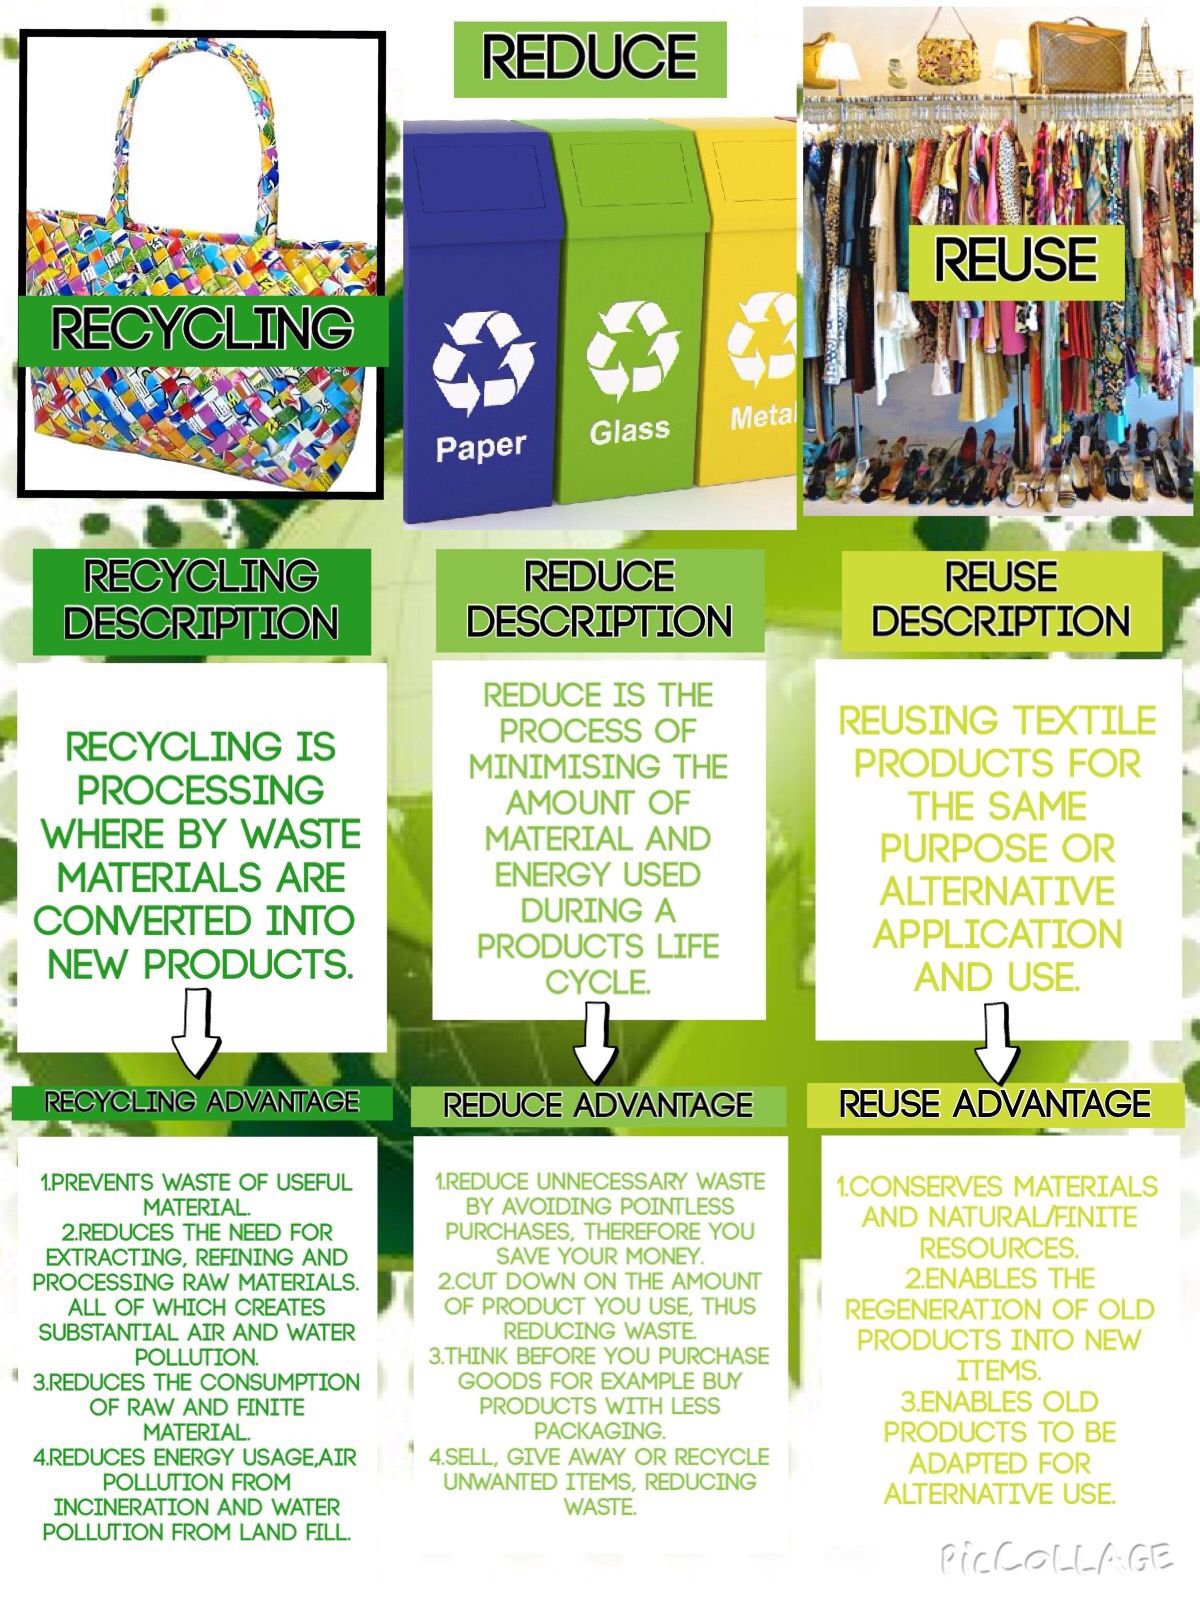 reduce waste essay This article introduces the topic of e-waste, looking at why electronics recycling is important and how consumers can recycle their old electronic devices.